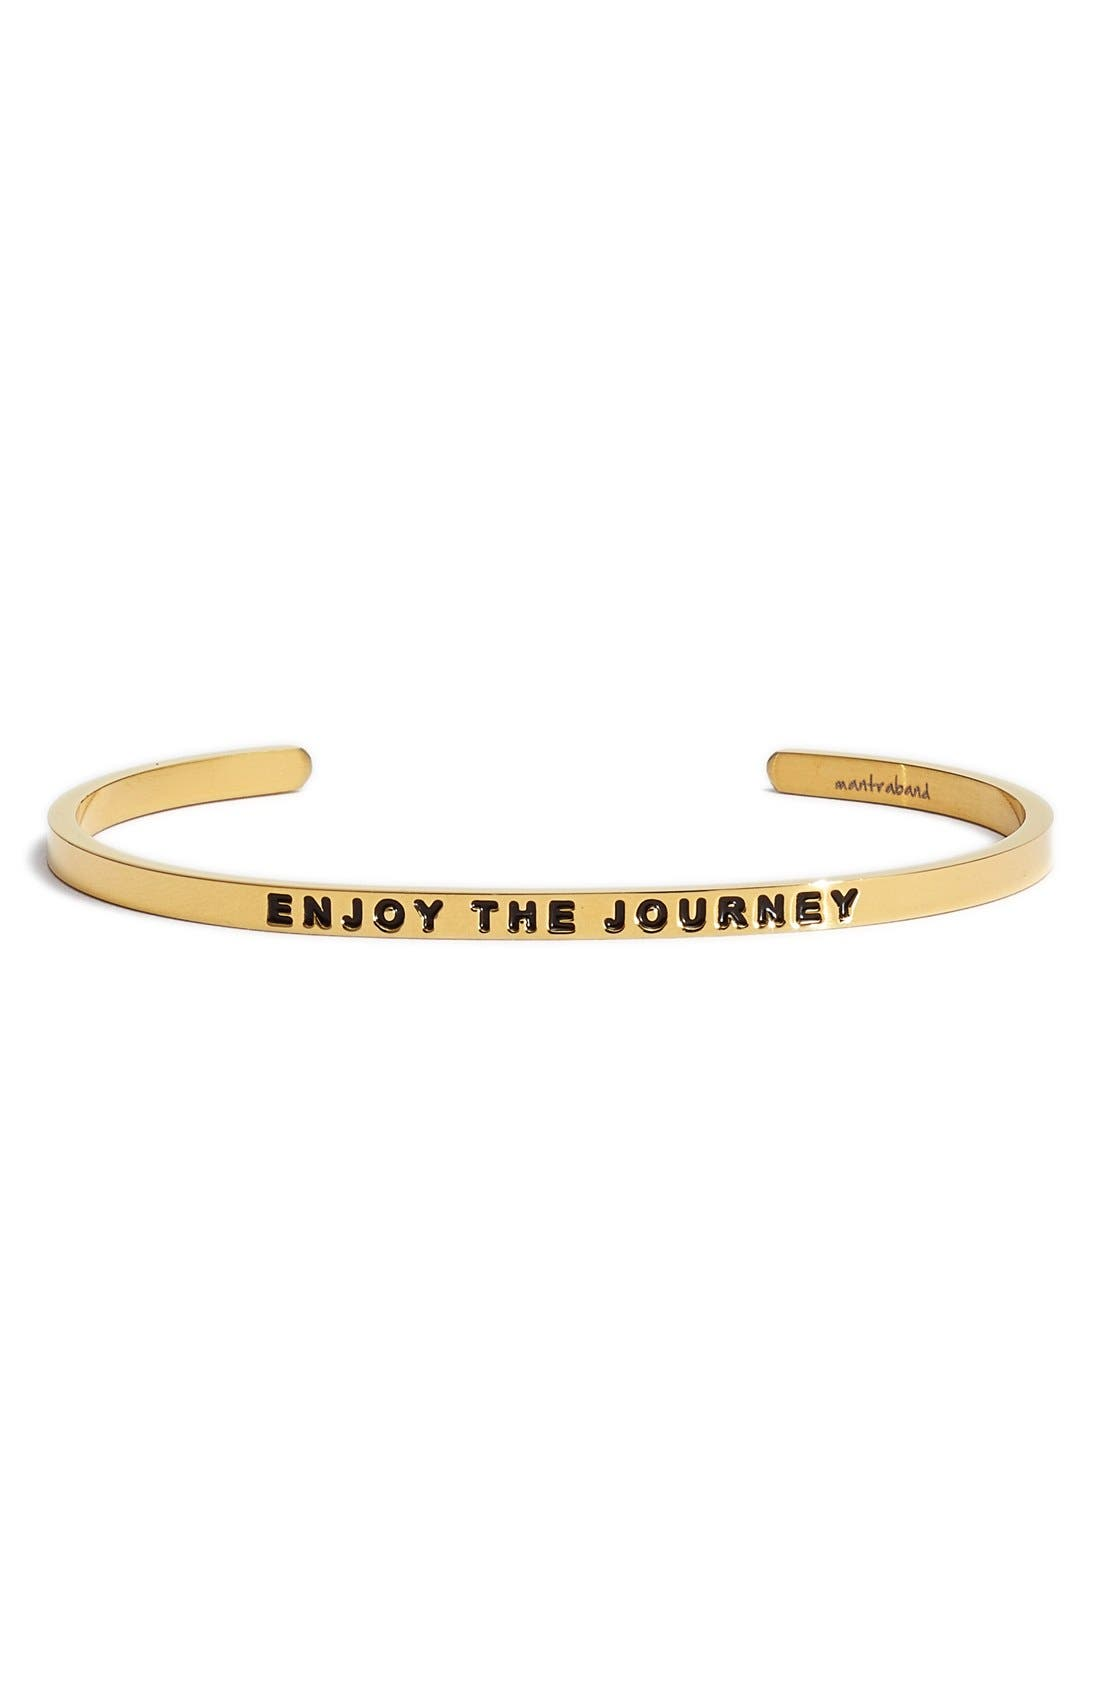 'Enjoy the Journey' Cuff,                             Main thumbnail 1, color,                             Gold